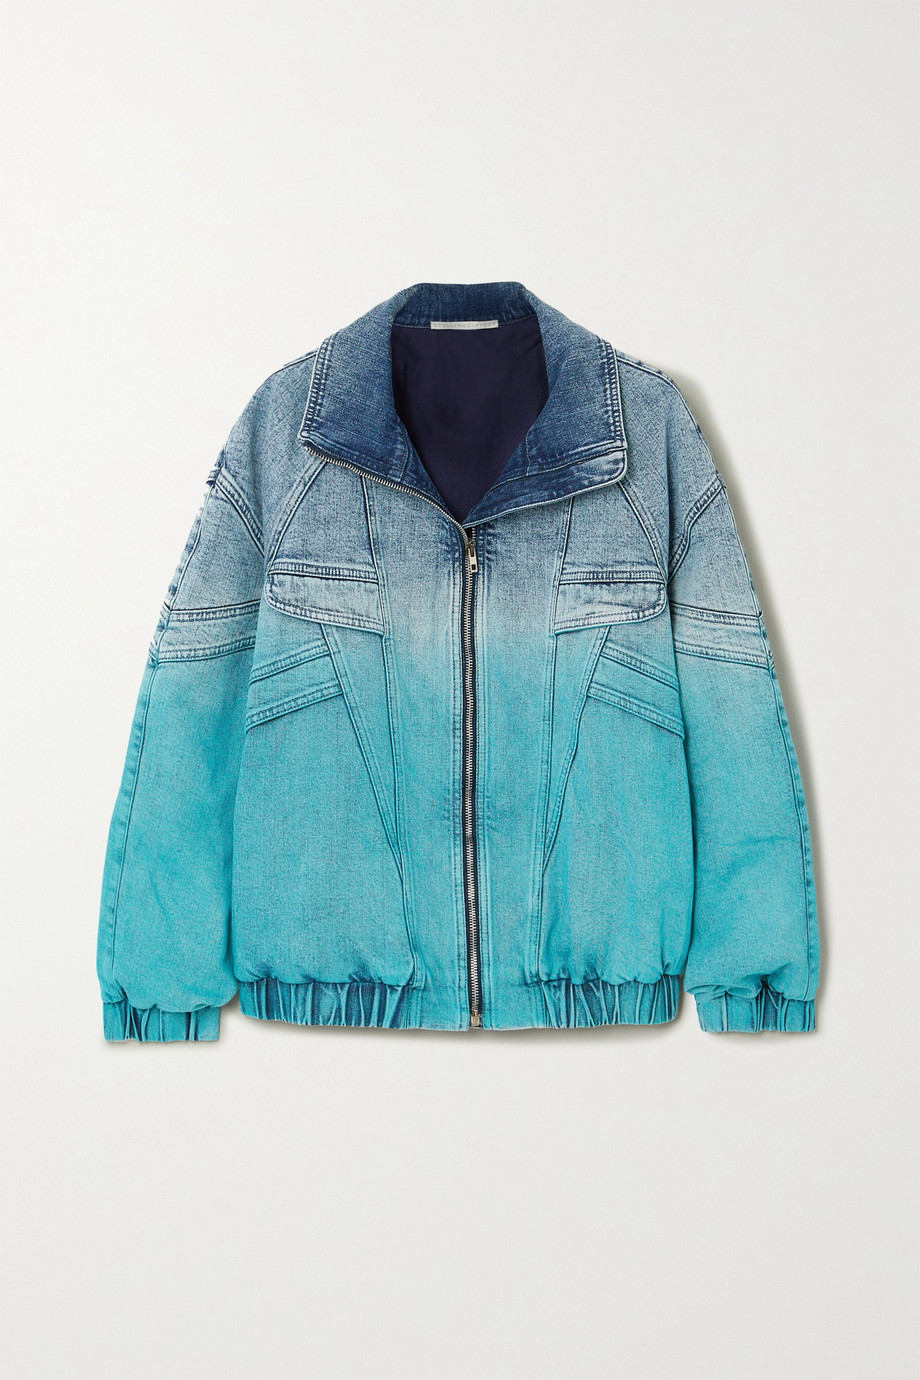 Stella McCartney Ombré denim jacket